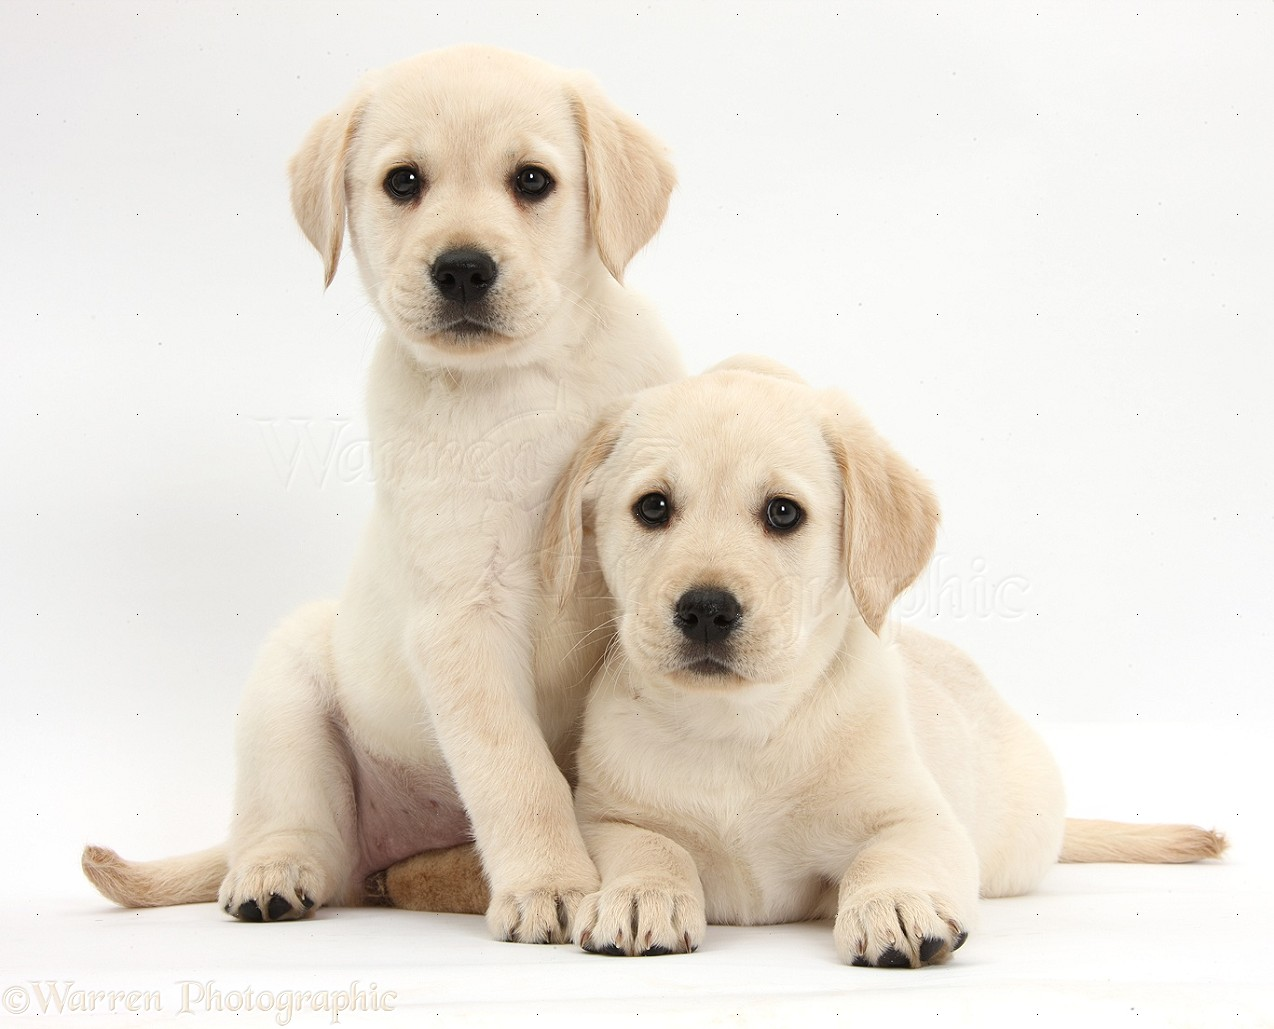 Dogs yellow labrador retriever puppies 8 weeks old photo for Dog house for labrador retriever